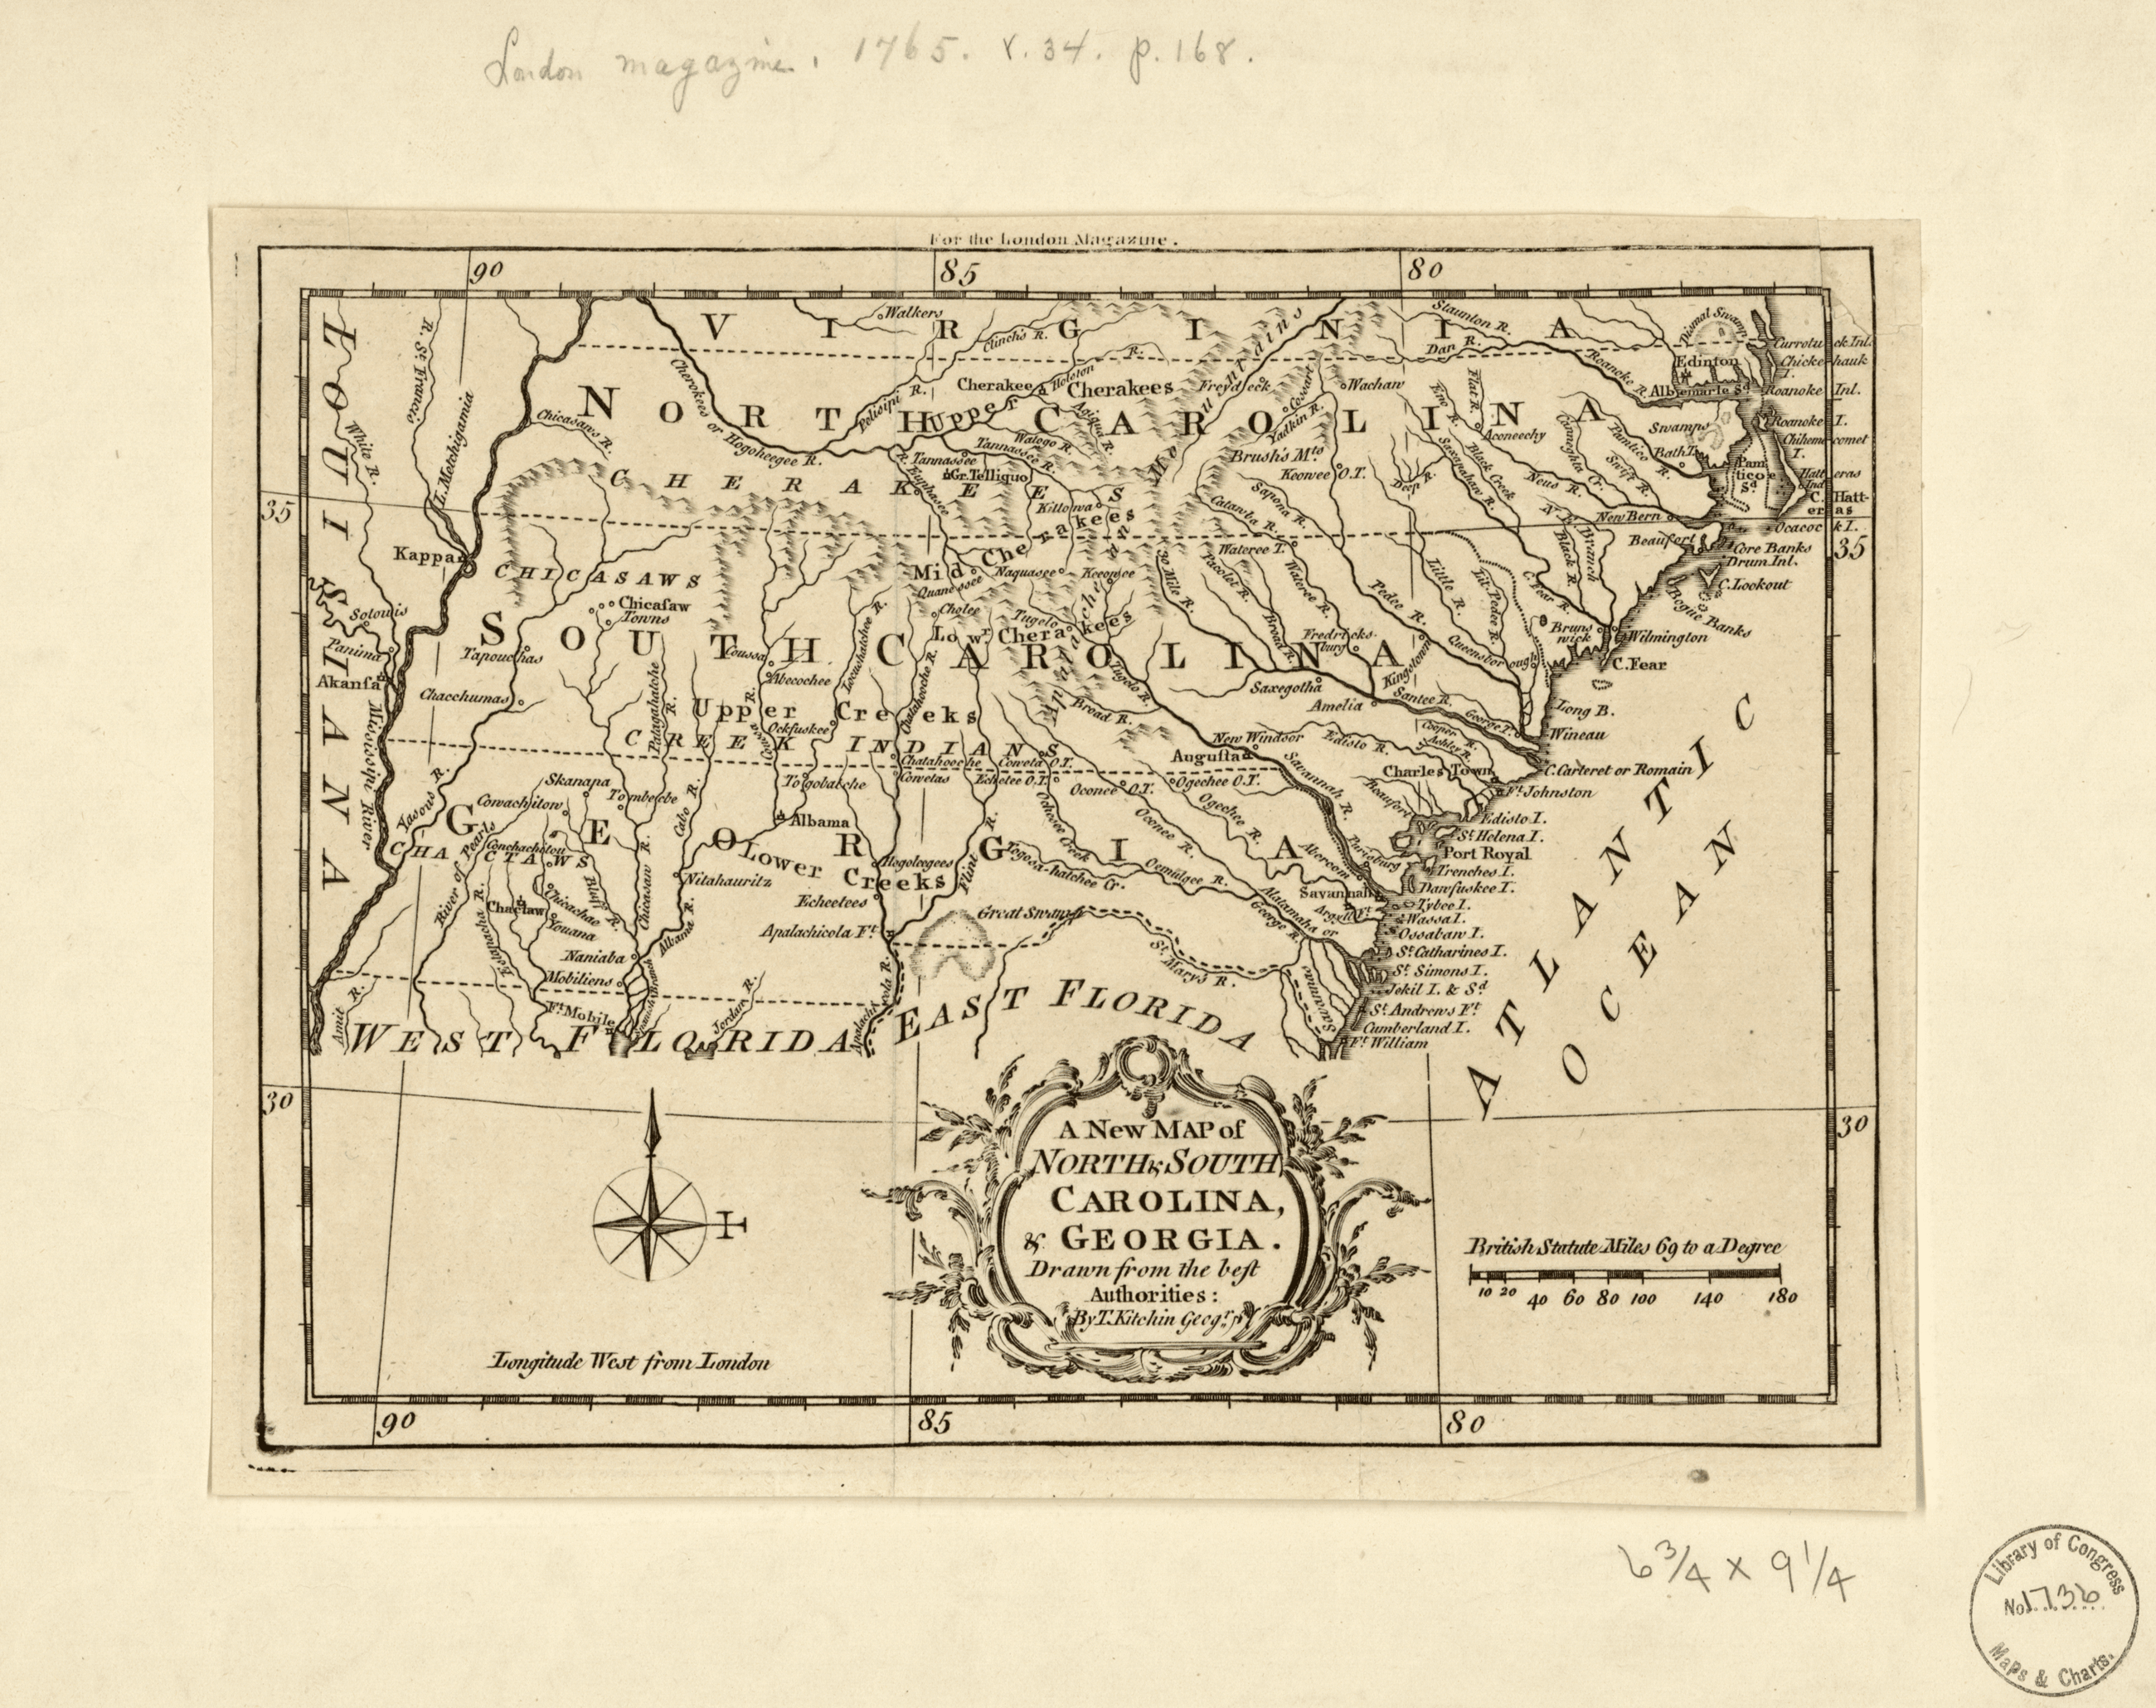 Map of Georgia and S Carolina - 1769